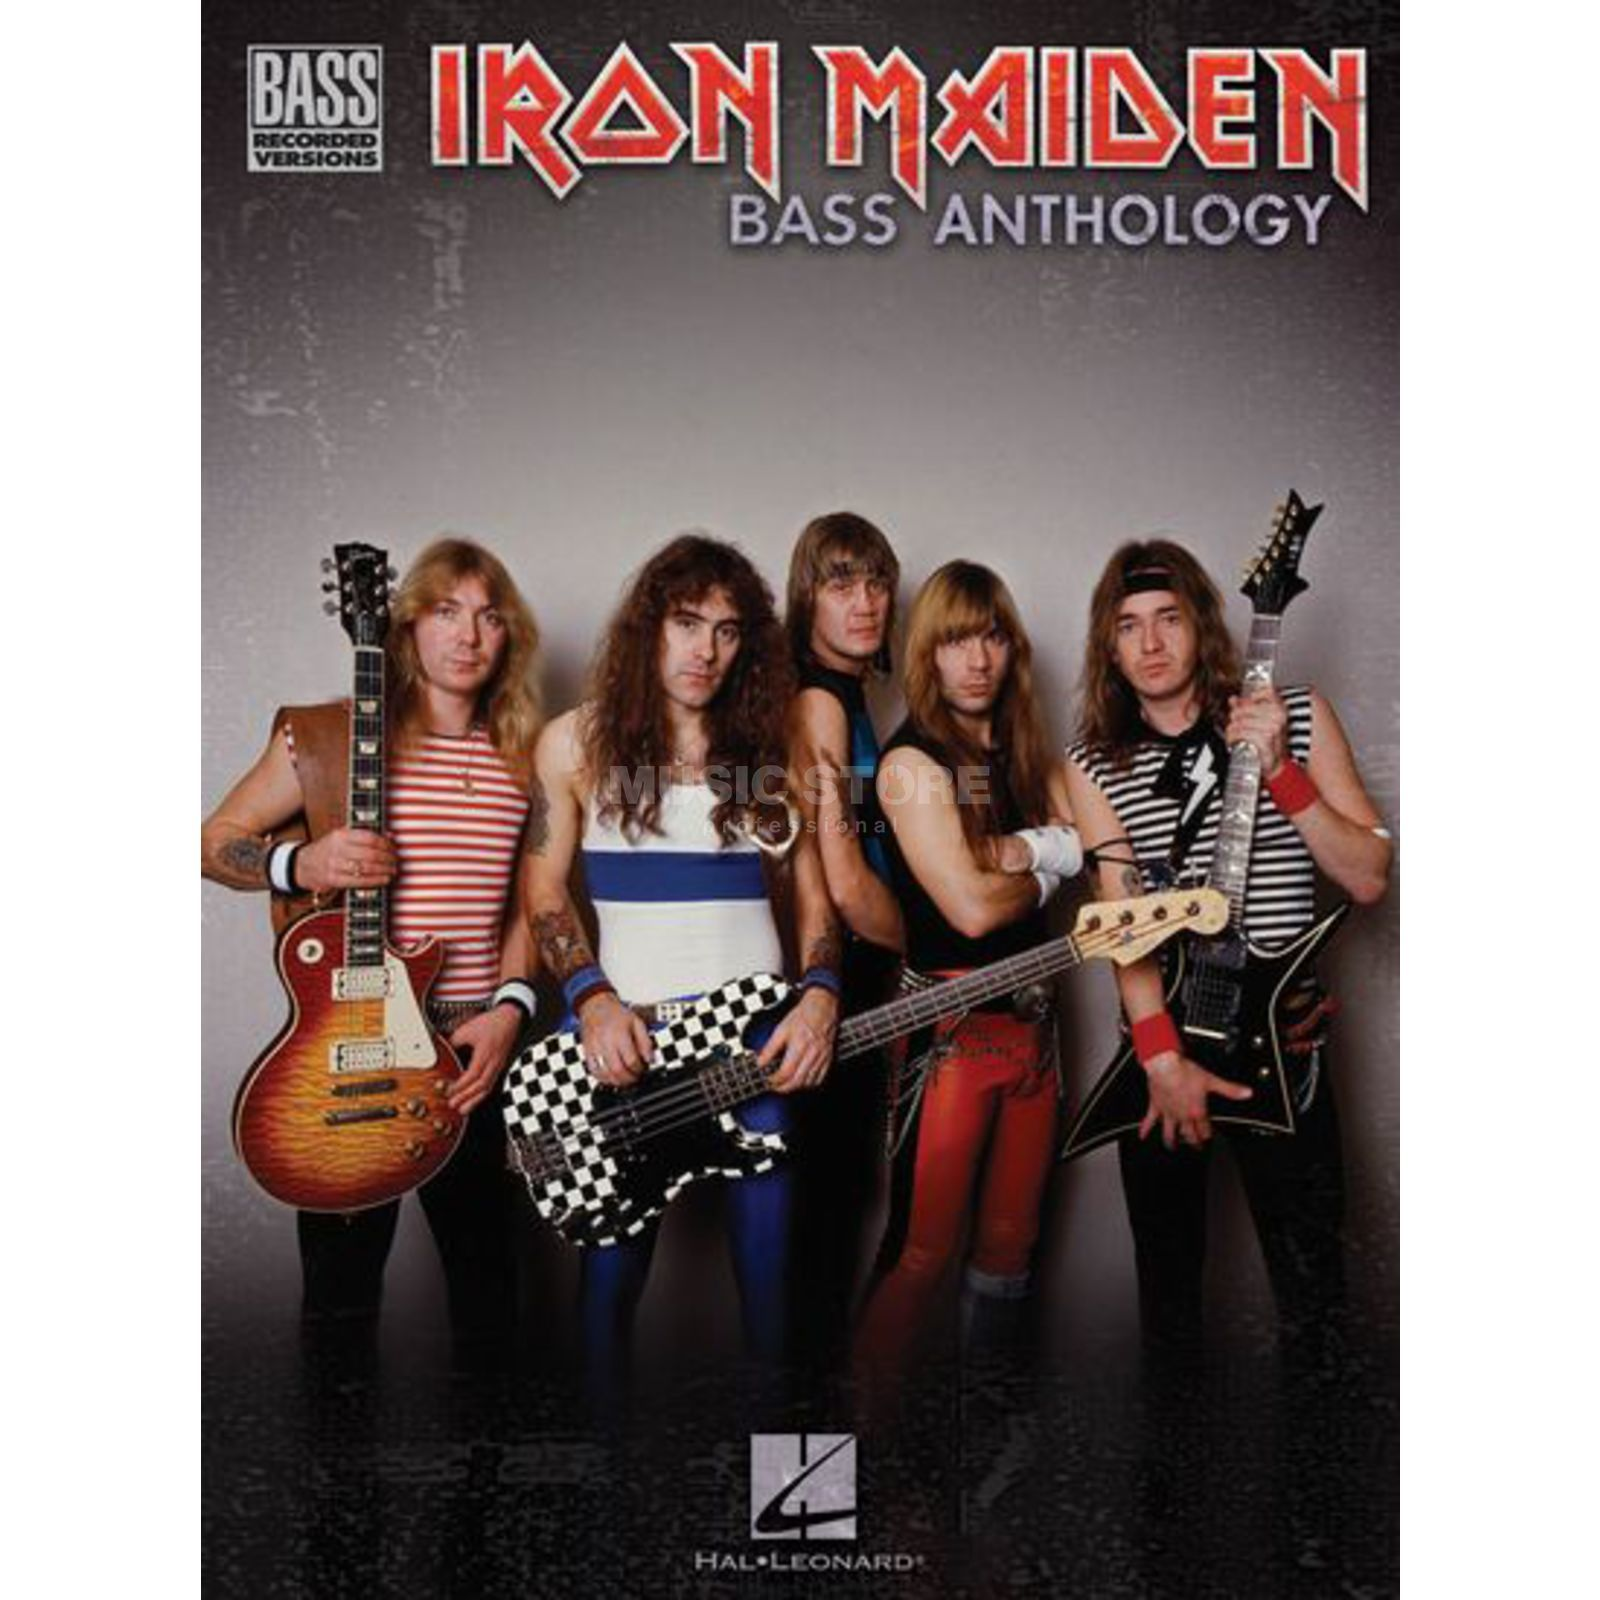 Hal Leonard Iron Maiden Bass Anthology Immagine prodotto